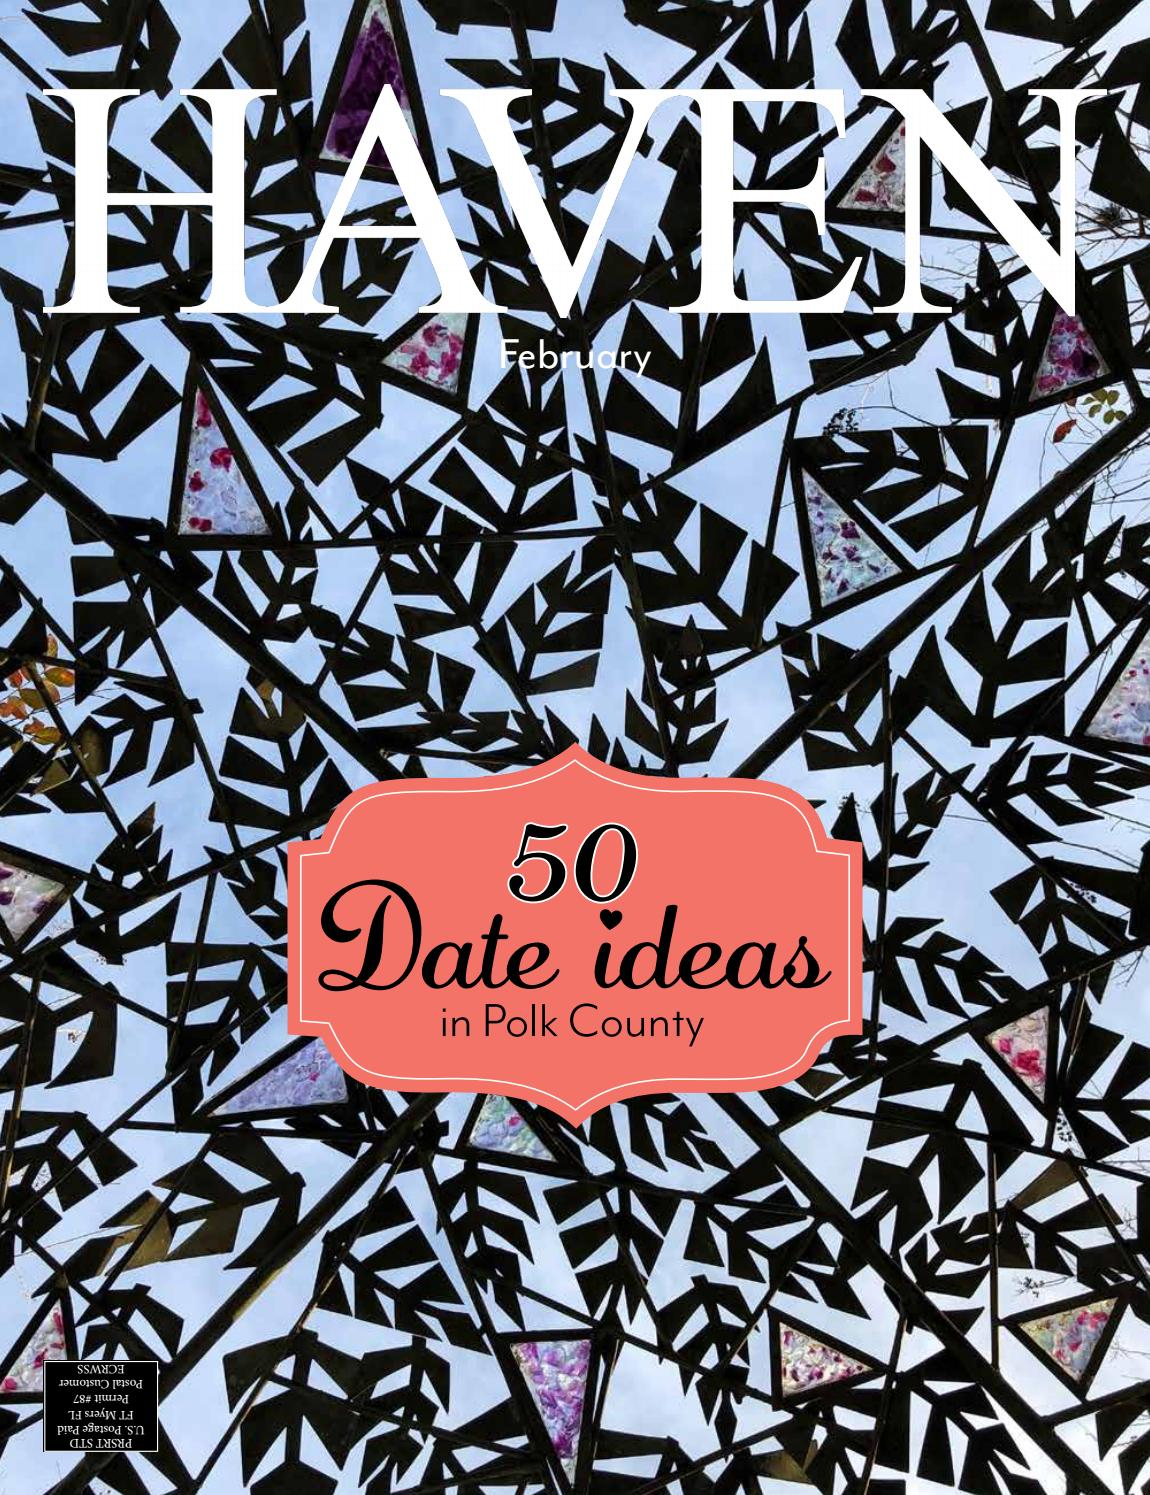 ae25e48c897 HAVEN February 2019 by HAVEN - issuu